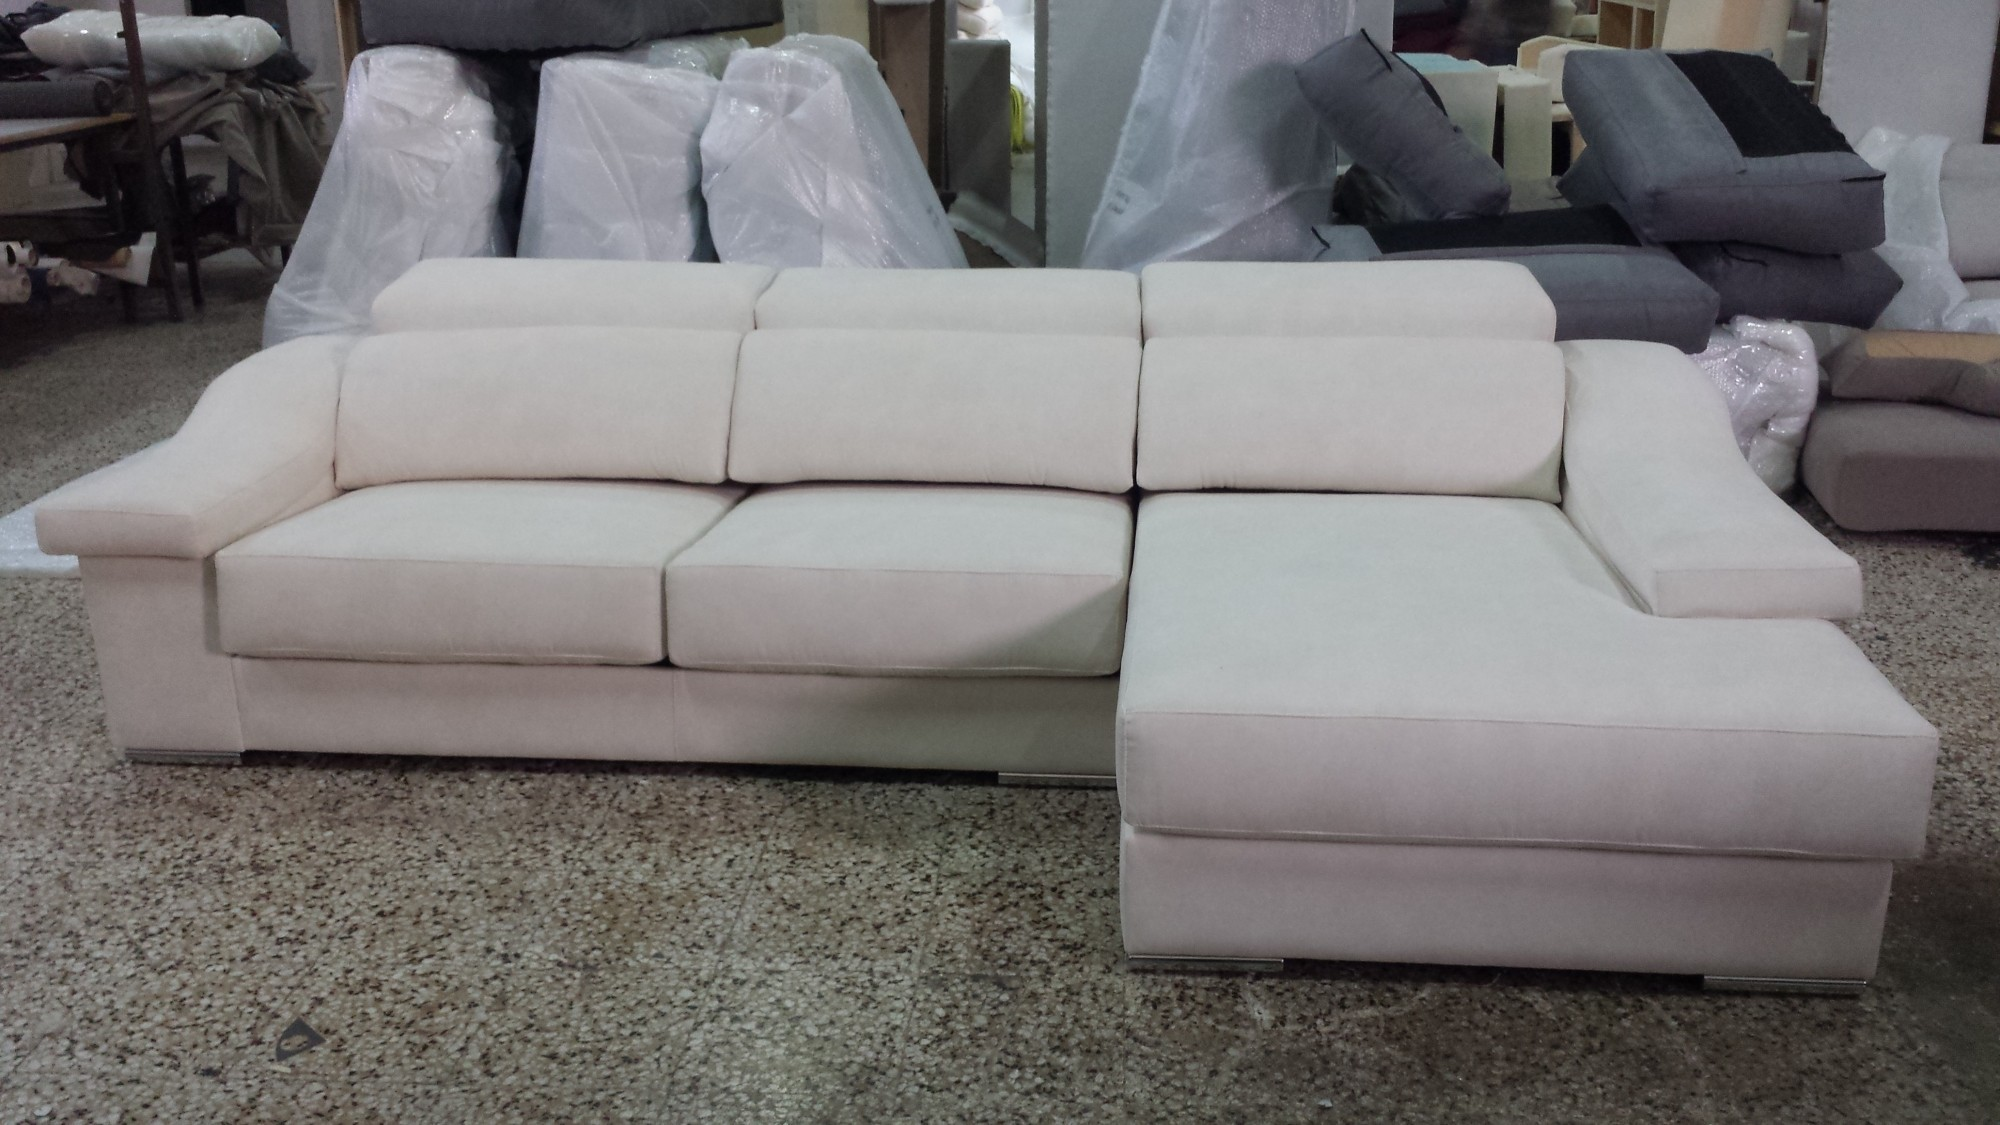 Sofas chaise longue baratos barcelona for Barcelona chaise longue